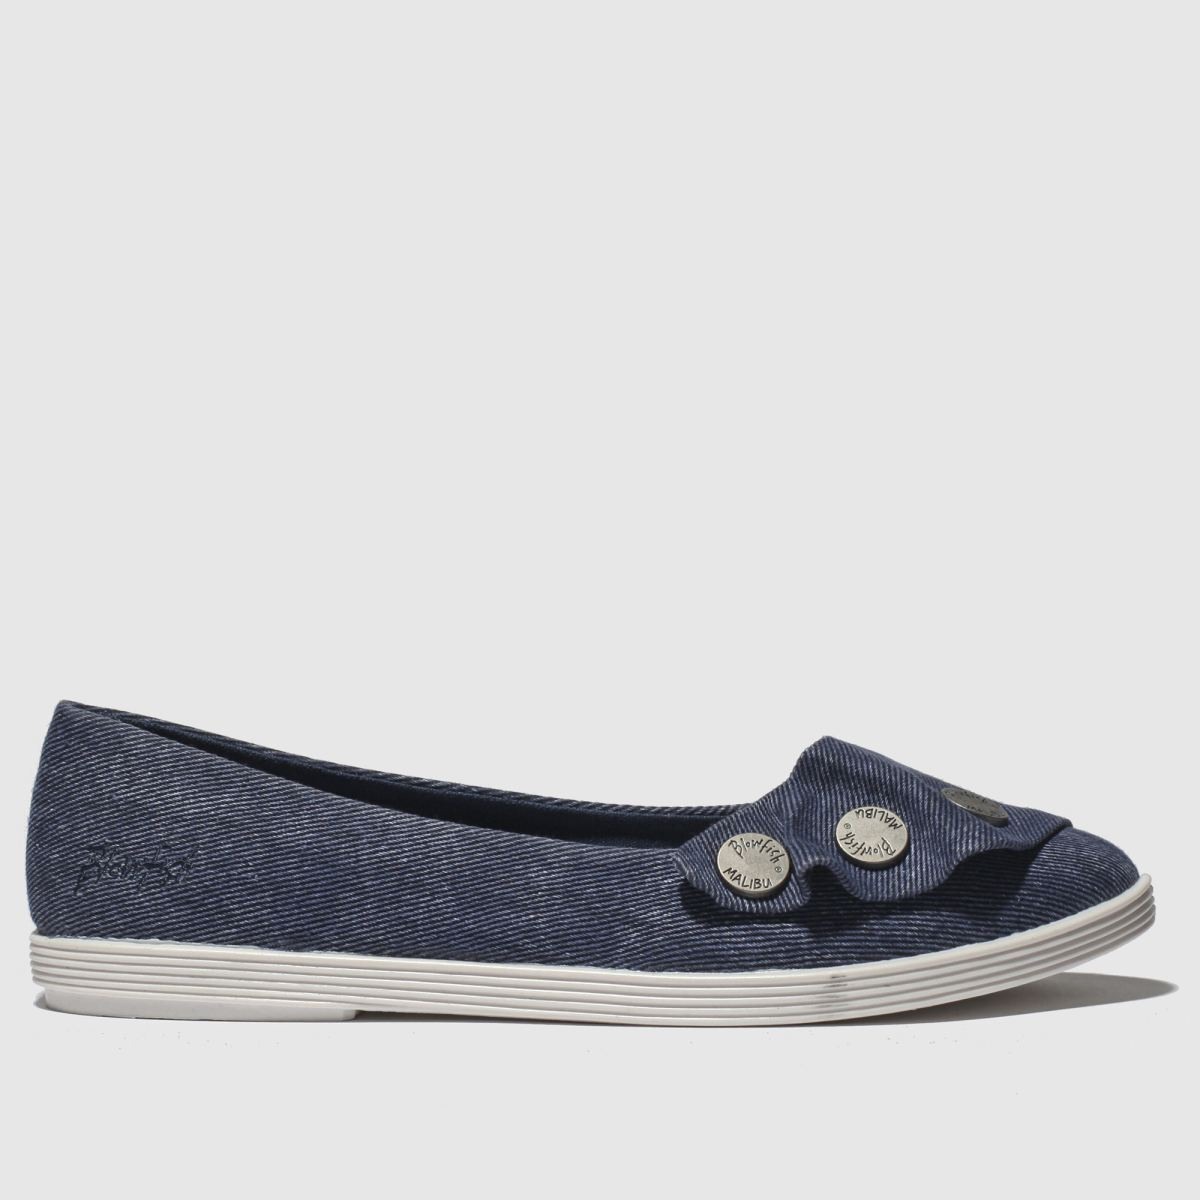 Blowfish Blowfish Blue Galena Vegan Flat Shoes